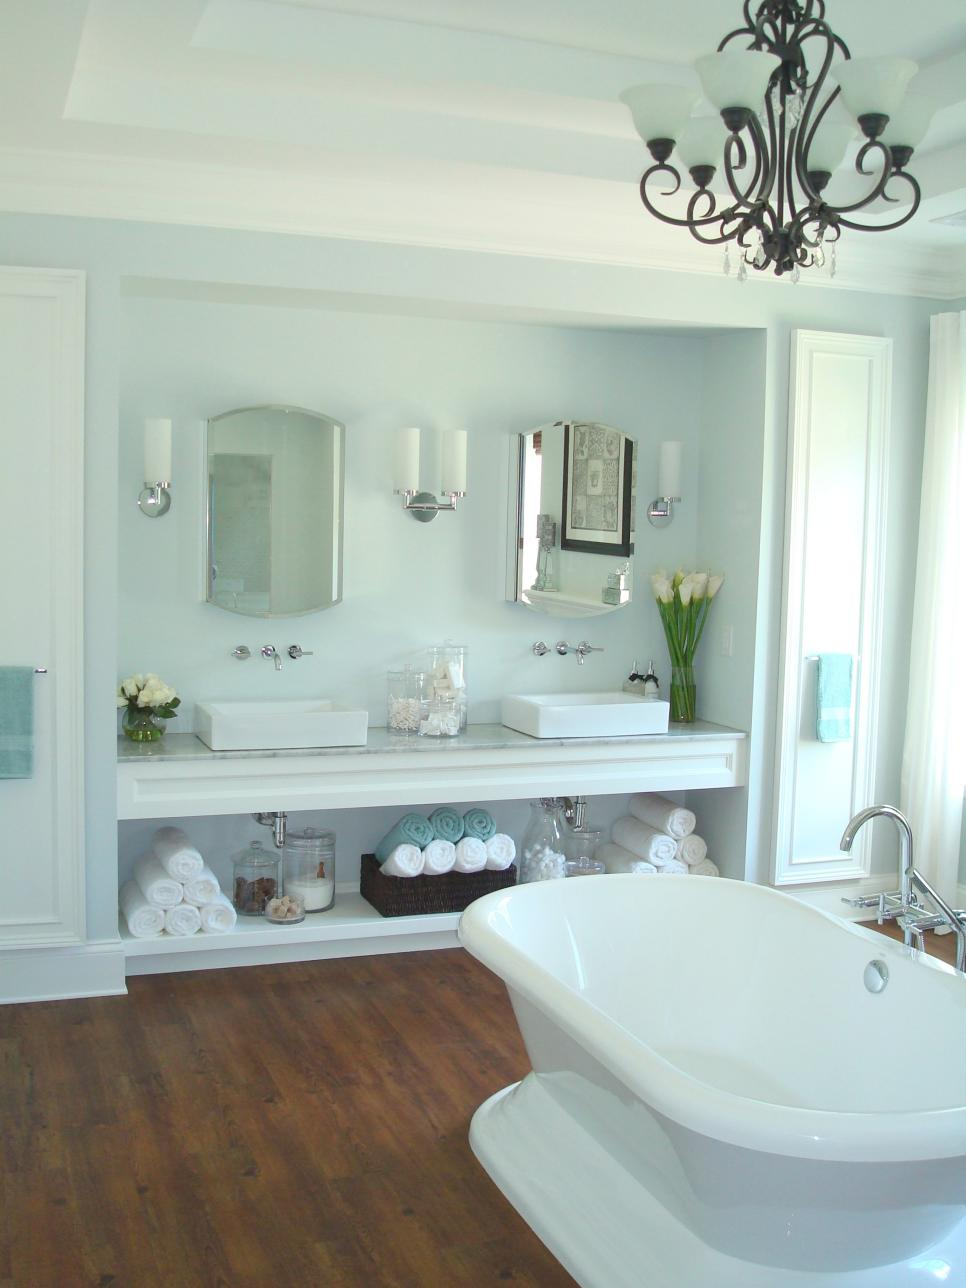 The best bathroom vanity ideas midcityeast for Bathroom ideas with tub